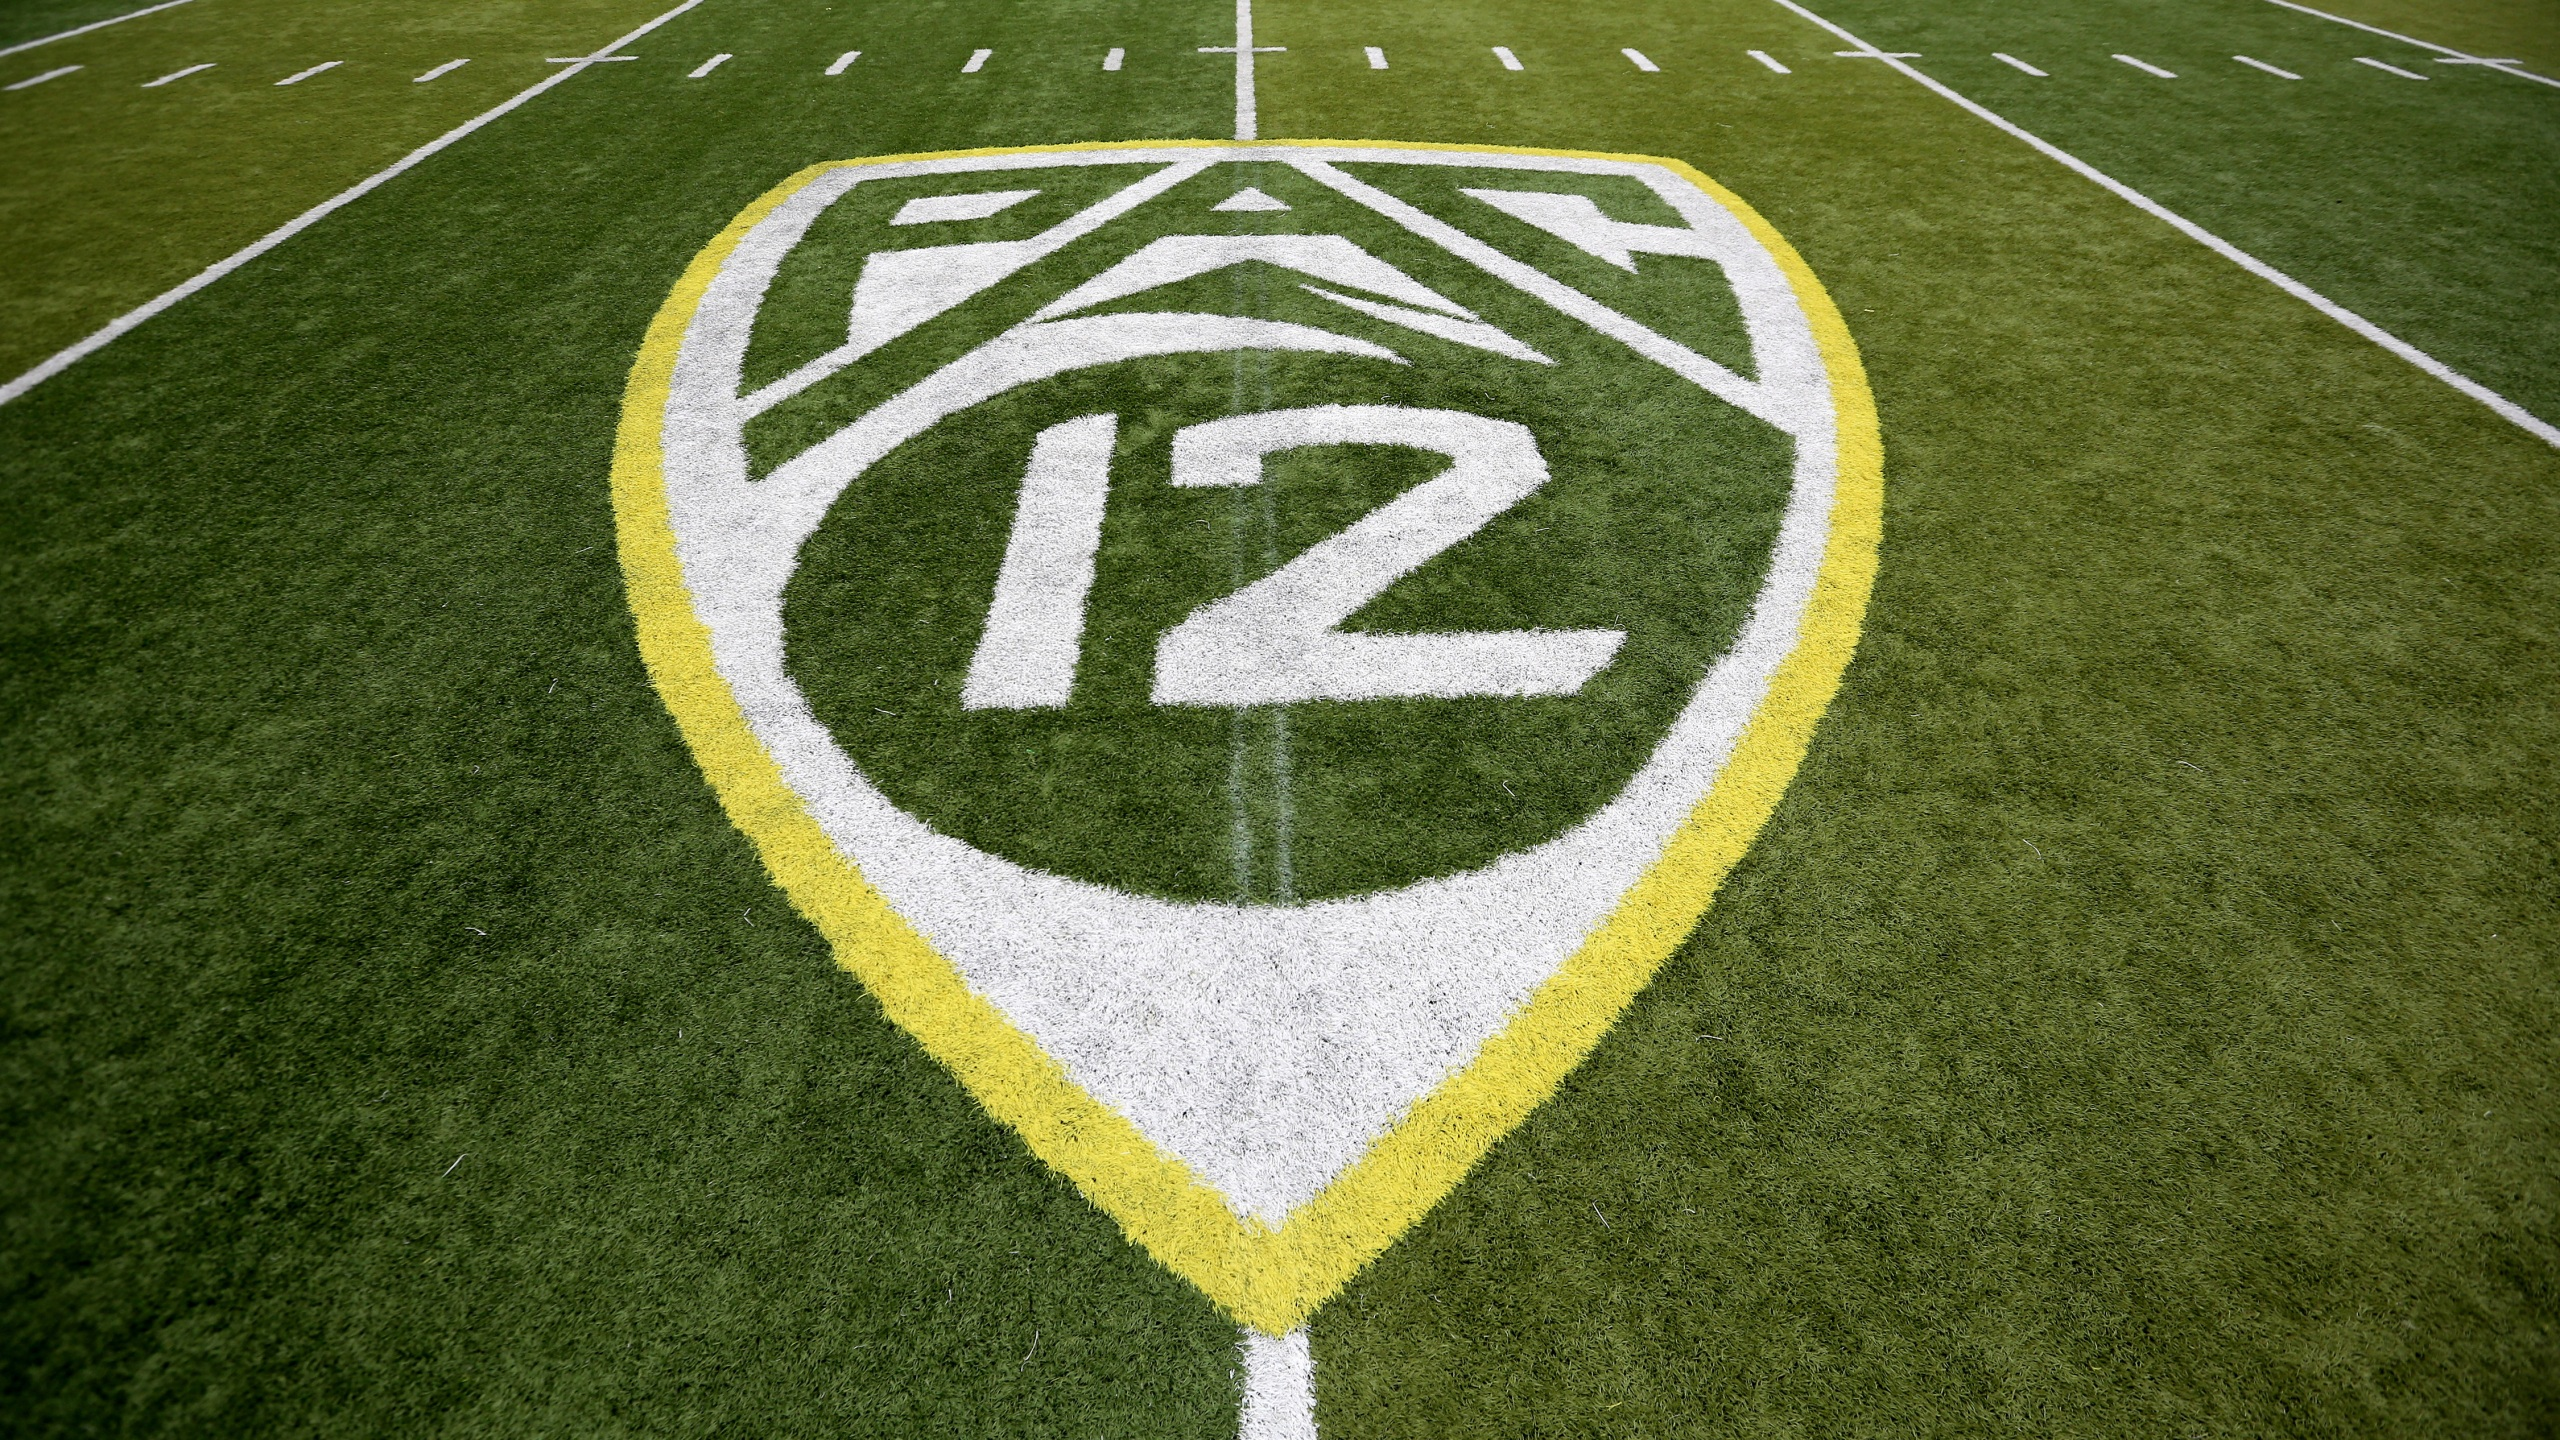 FILE- In this Oct. 10, 2015, file photo, a PAC-12 logo is displayed on the field before an NCAA college football game between Washington State and Oregon in Eugene, Ore. The Pac-12 university presidents and chancellors will meet Friday, Sept. 17, 2020, and be presented options for staging a fall football season, but Commissioner Larry Scott says a vote by the the CEO Group is not expected. (AP Photo/Ryan Kang, File)